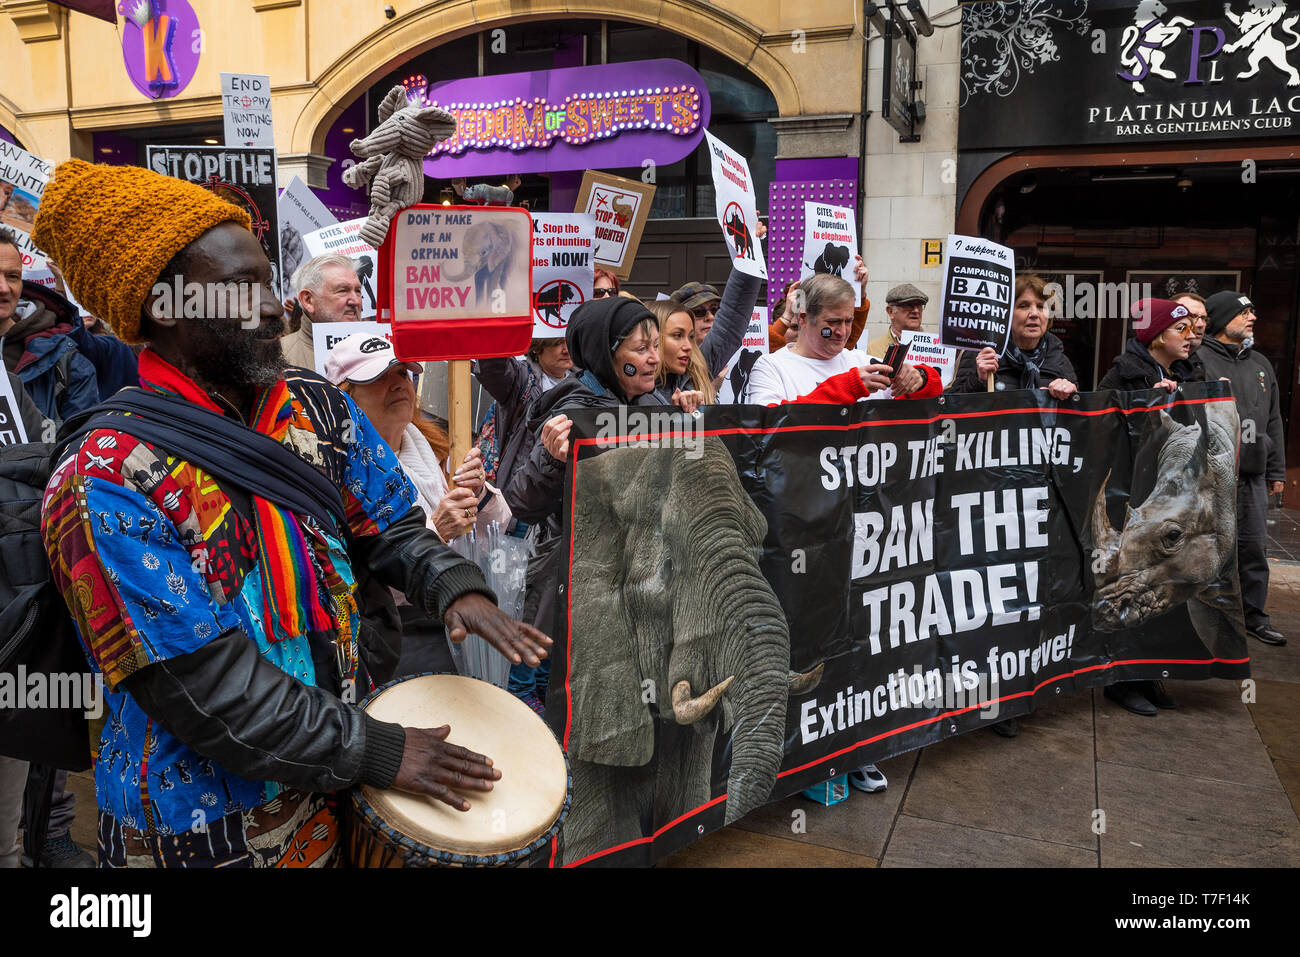 the-london-march-against-trophy-hunting-and-extinction-gathered-at-cavendish-square-and-marched-through-central-london-to-downing-street-T7F14K.jpg